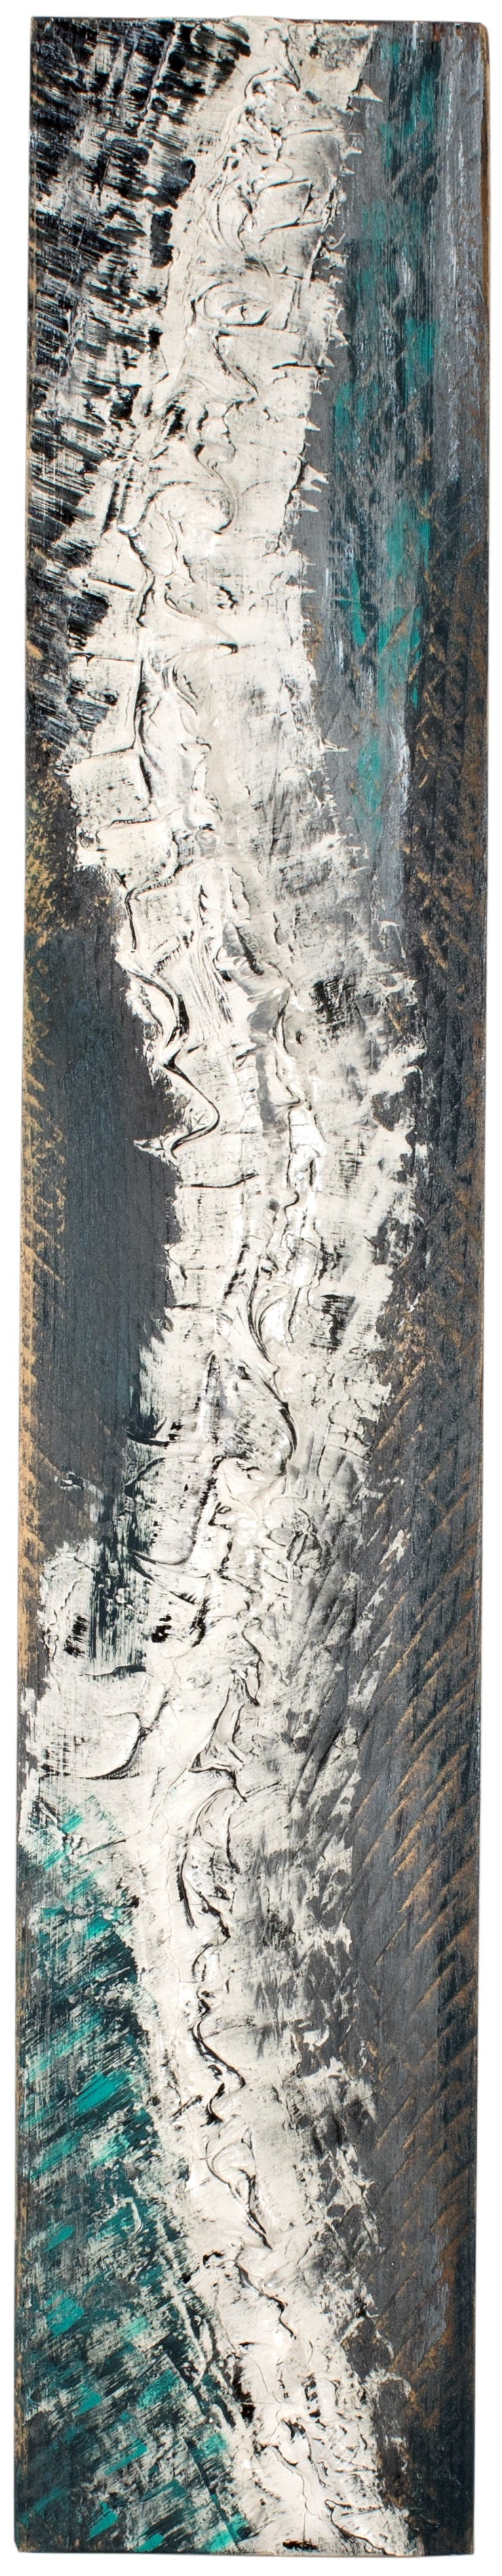 VERTEBRAE#1 - Plaster and acrylic on rough spruce board, 17x94cm - AVAILABLE